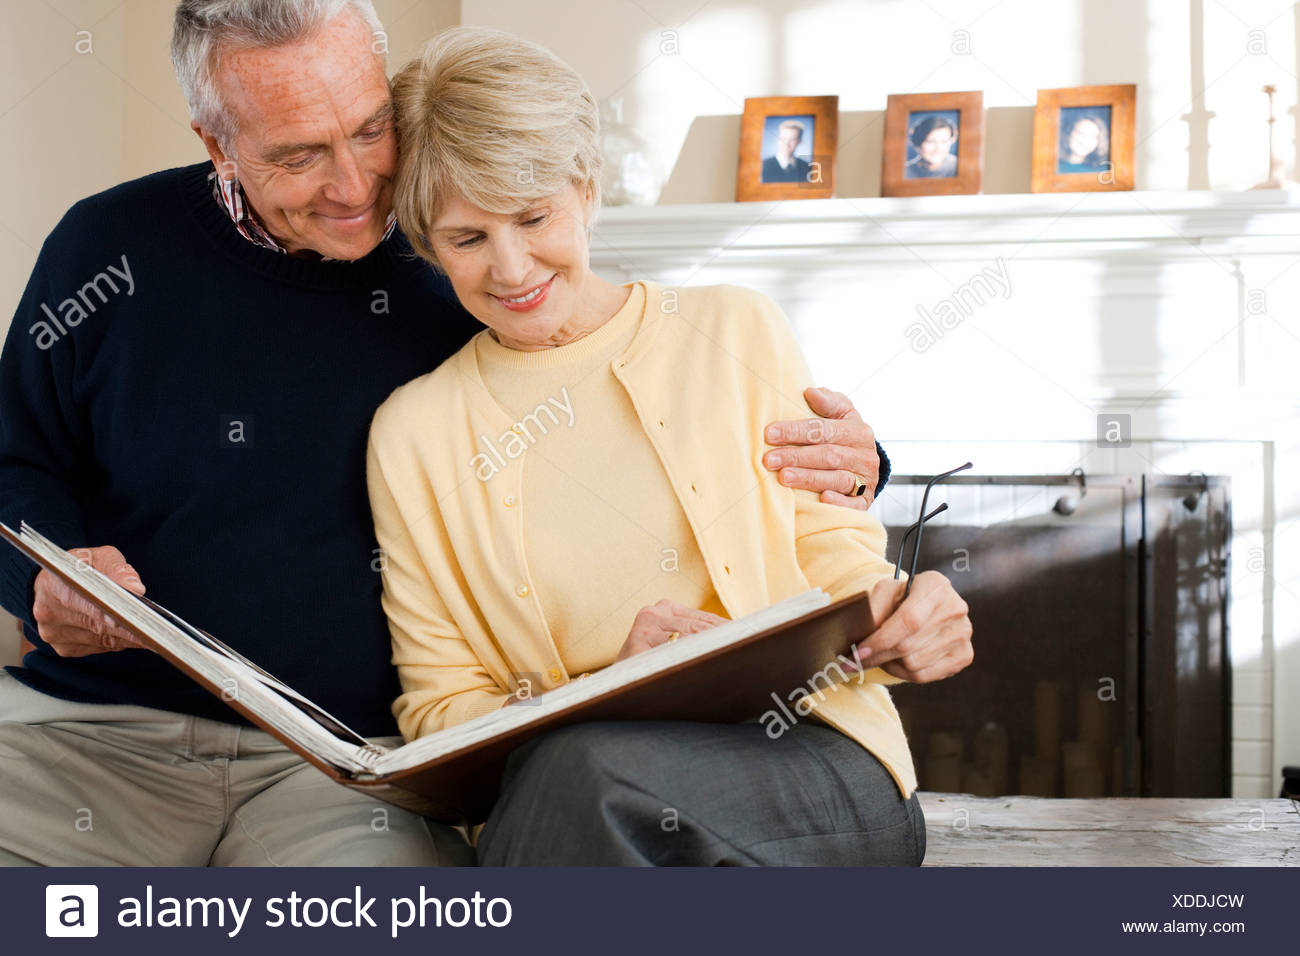 Mature couple looking at photo album - Stock Image